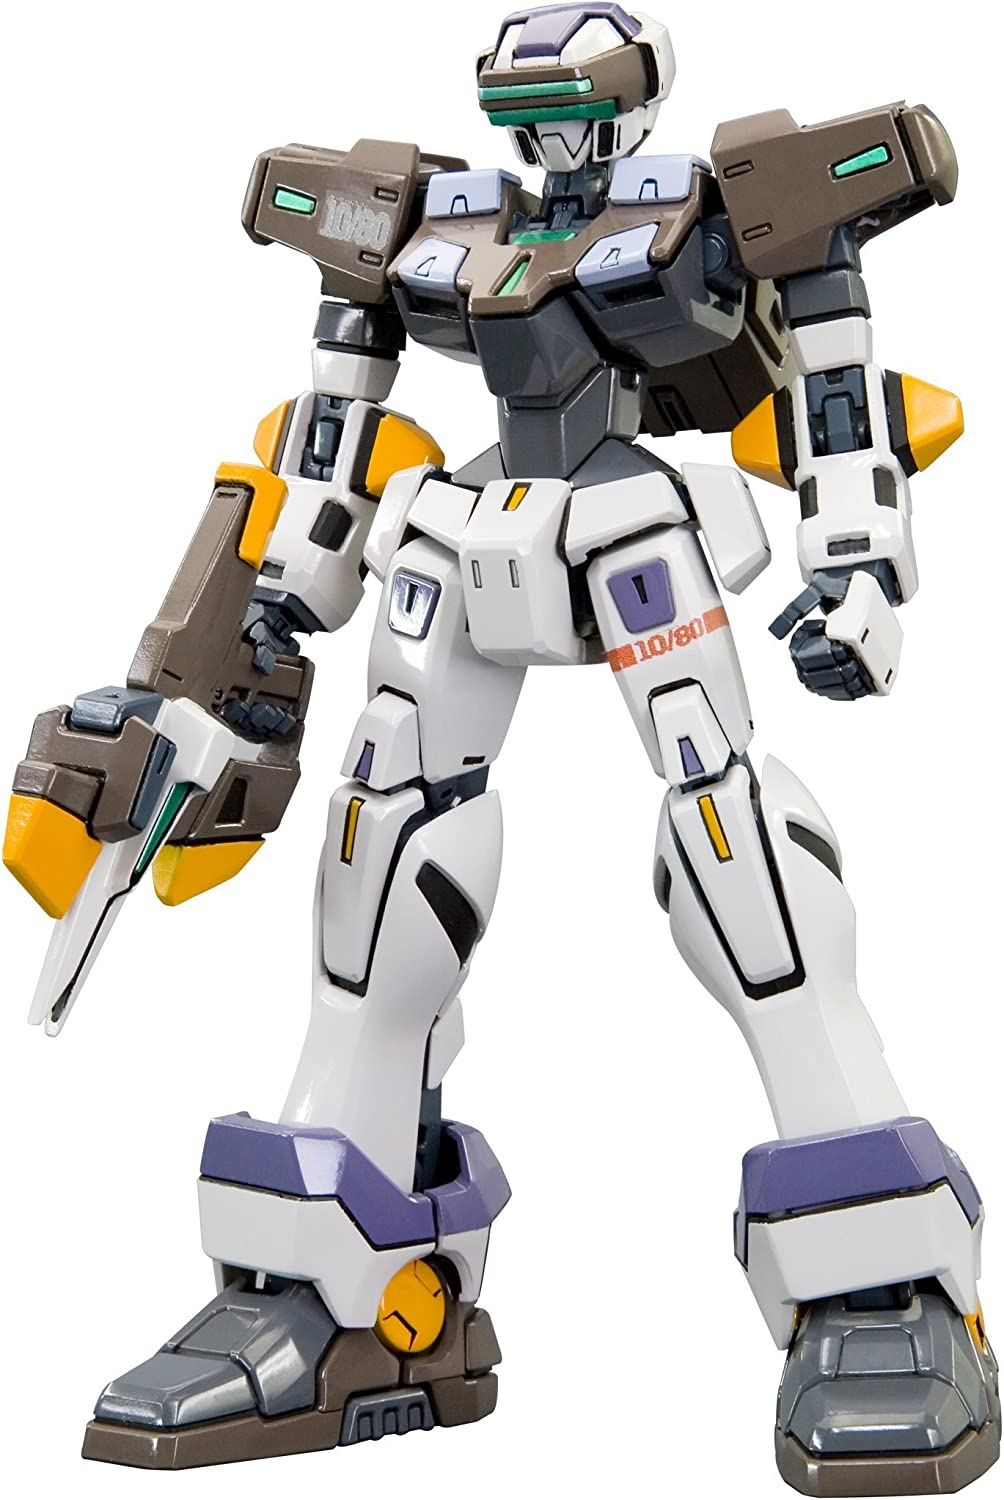 promocionales de incentivo Cyber Troopers Virtual-On Oratorio Tangram MBV-04-10 MBV-04-10 MBV-04-10 80sp Ten Eighty Special (1 100 scale plastic kit) (japan import)  tienda de venta en línea